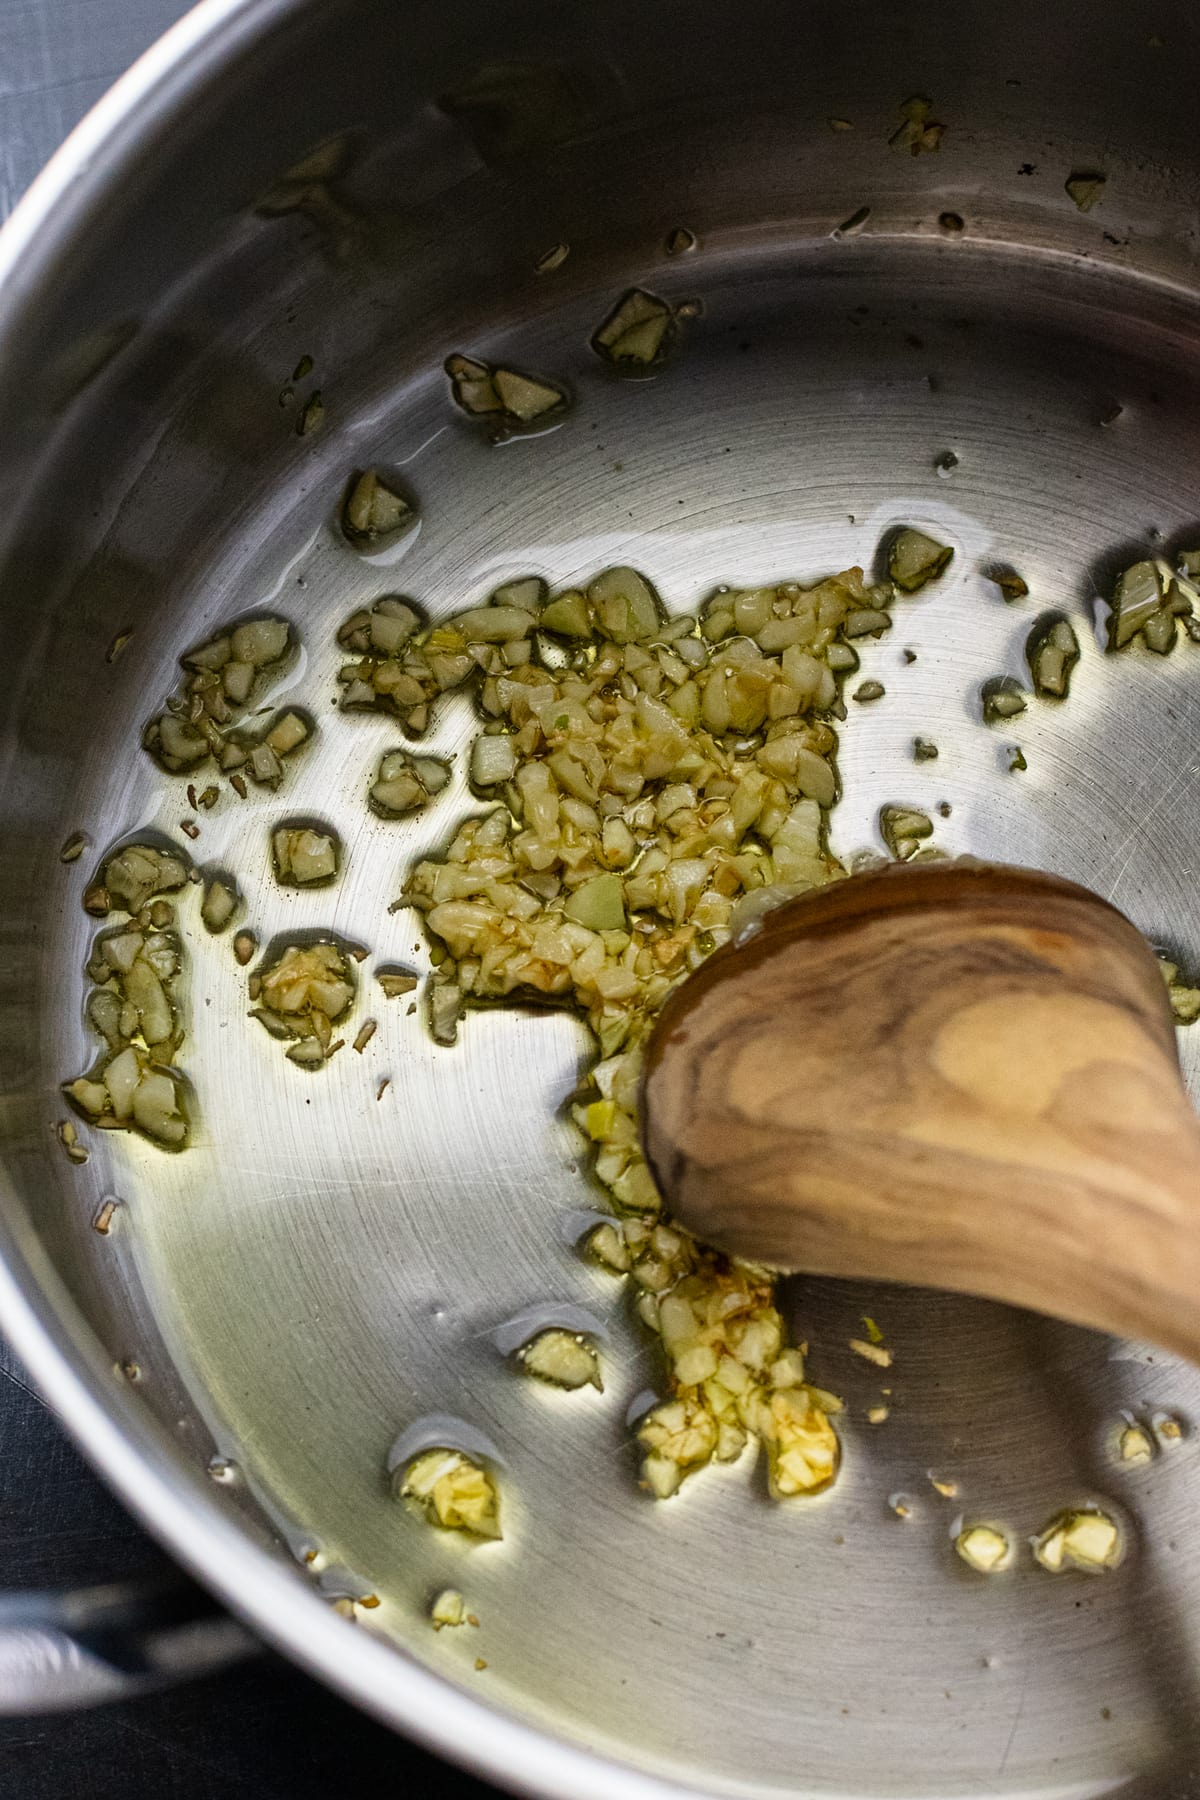 wooden spoon stirring minced garlic in pot with oil.